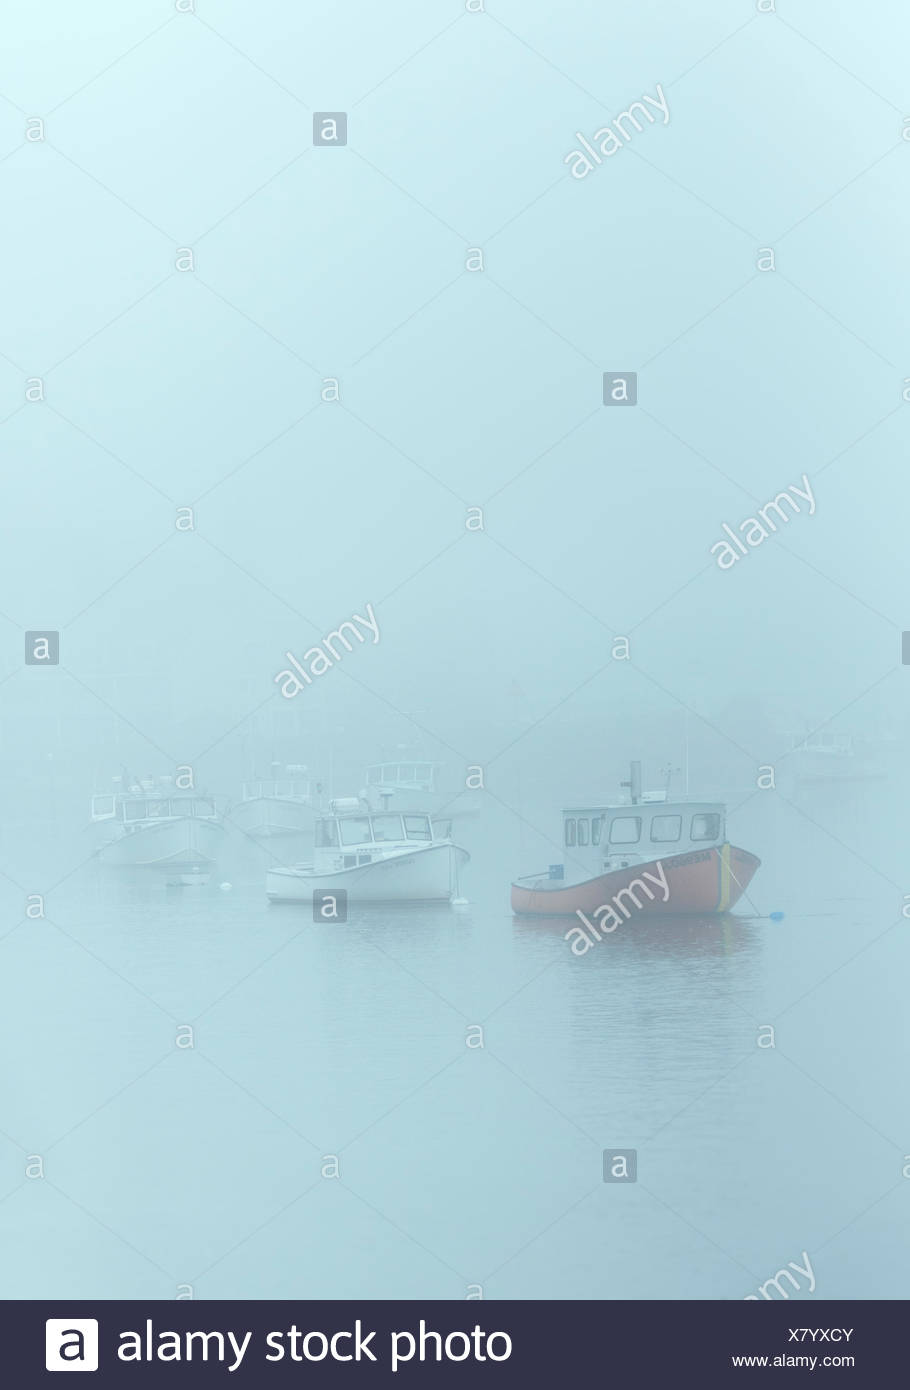 Harbor fishing boats shrouded in heavy fog, Kennebunk, Maine, USA. - Stock Image